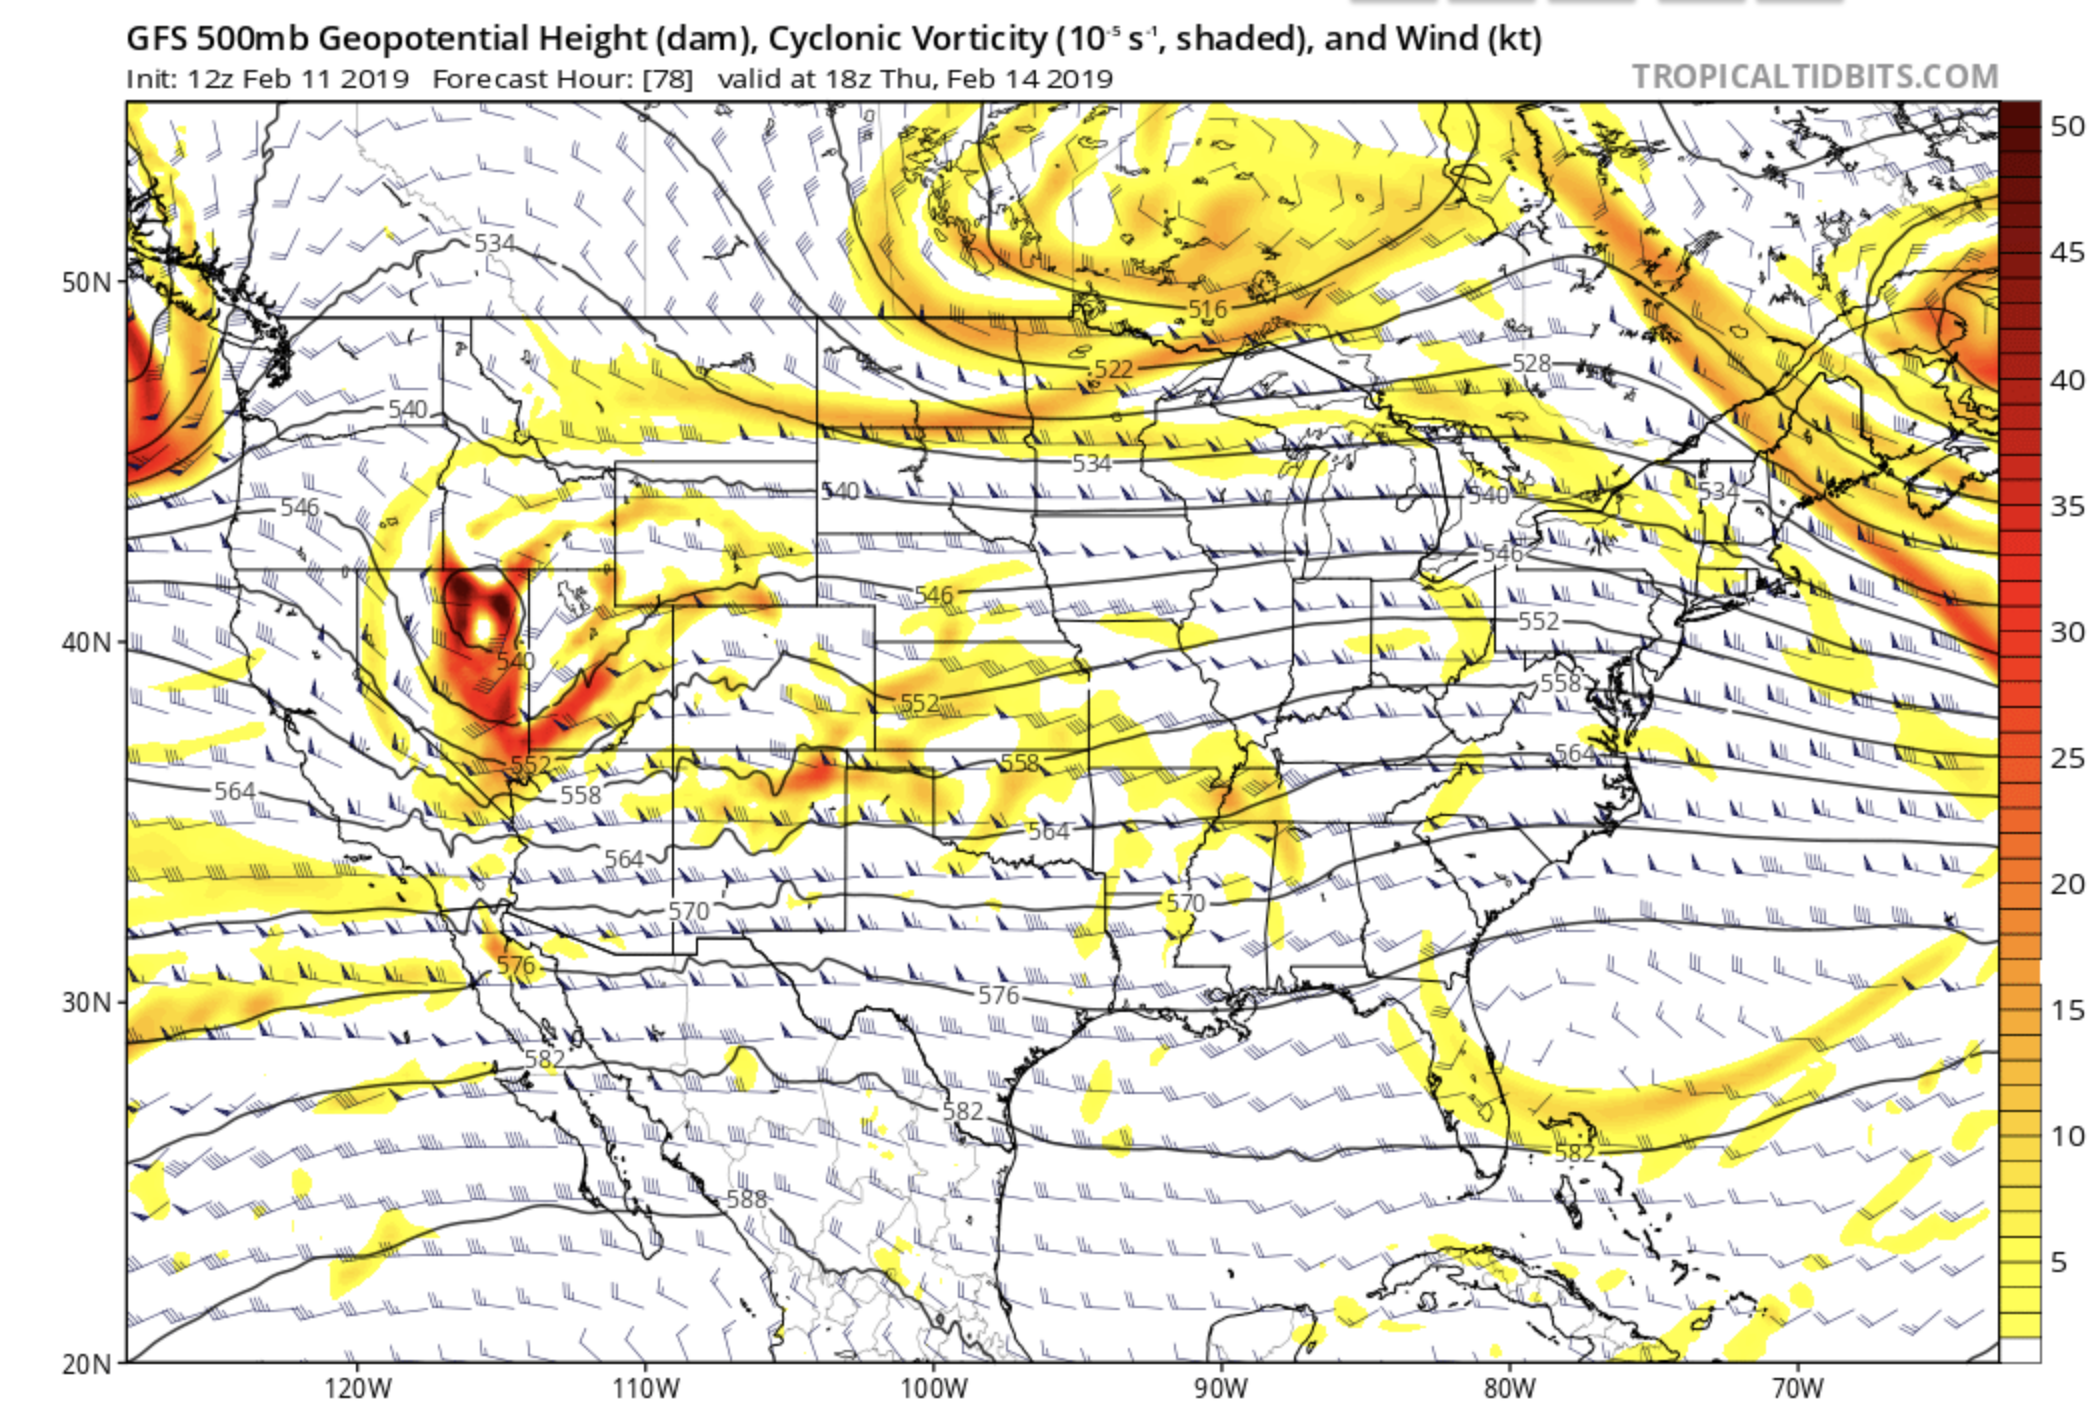 500 mb heights and vorticity valid Wednesday evening. Plot courtesy of tropicaltidbits.com